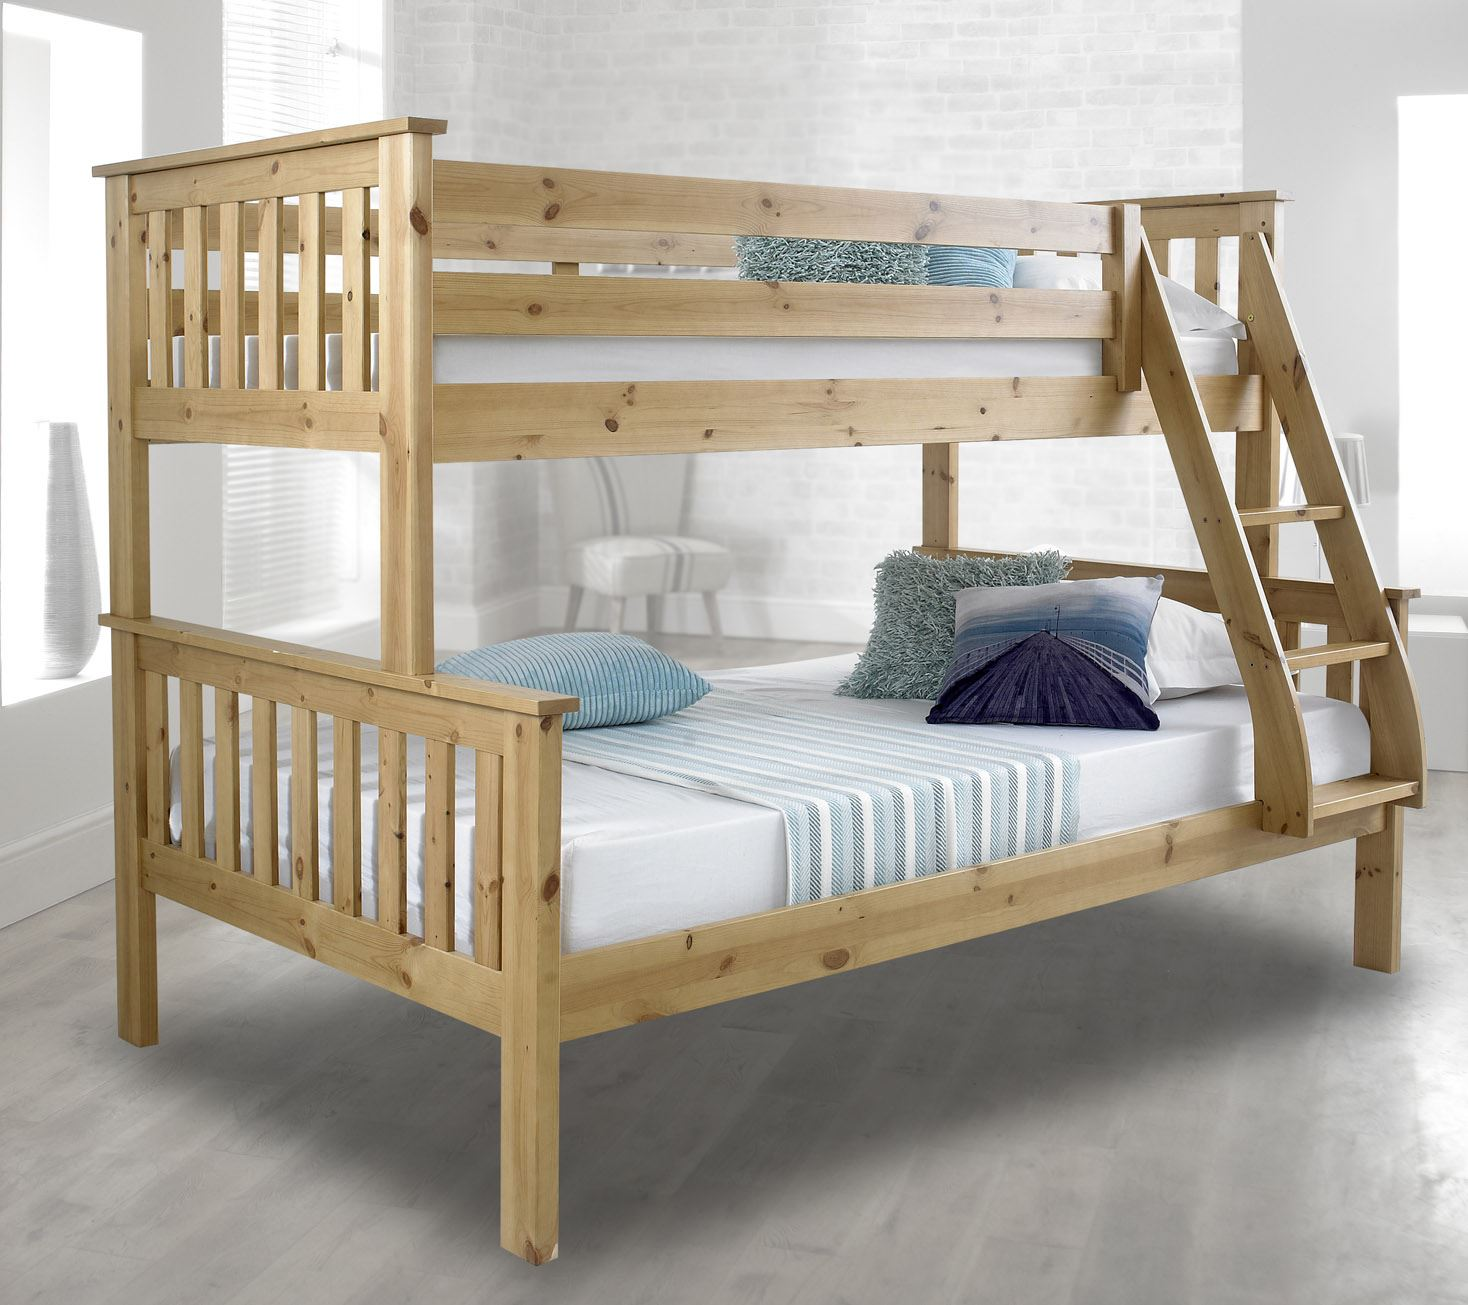 Happy beds atlantis solid wood triple sleeper bunk bed 3ft for Triple bunk bed